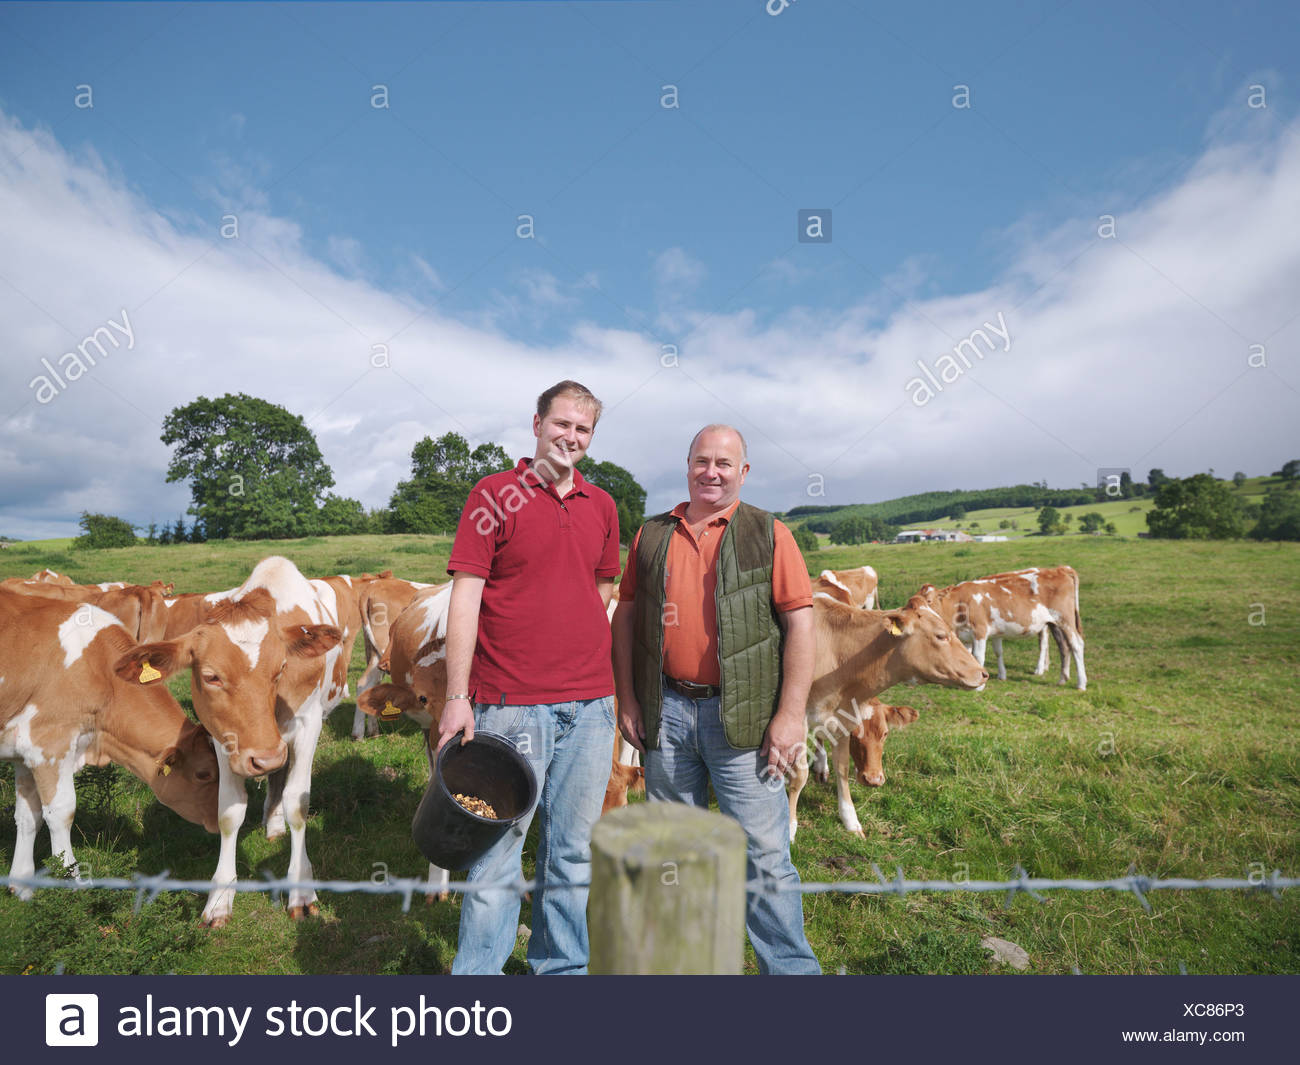 Armer and son with Guernsey calves - Stock Image